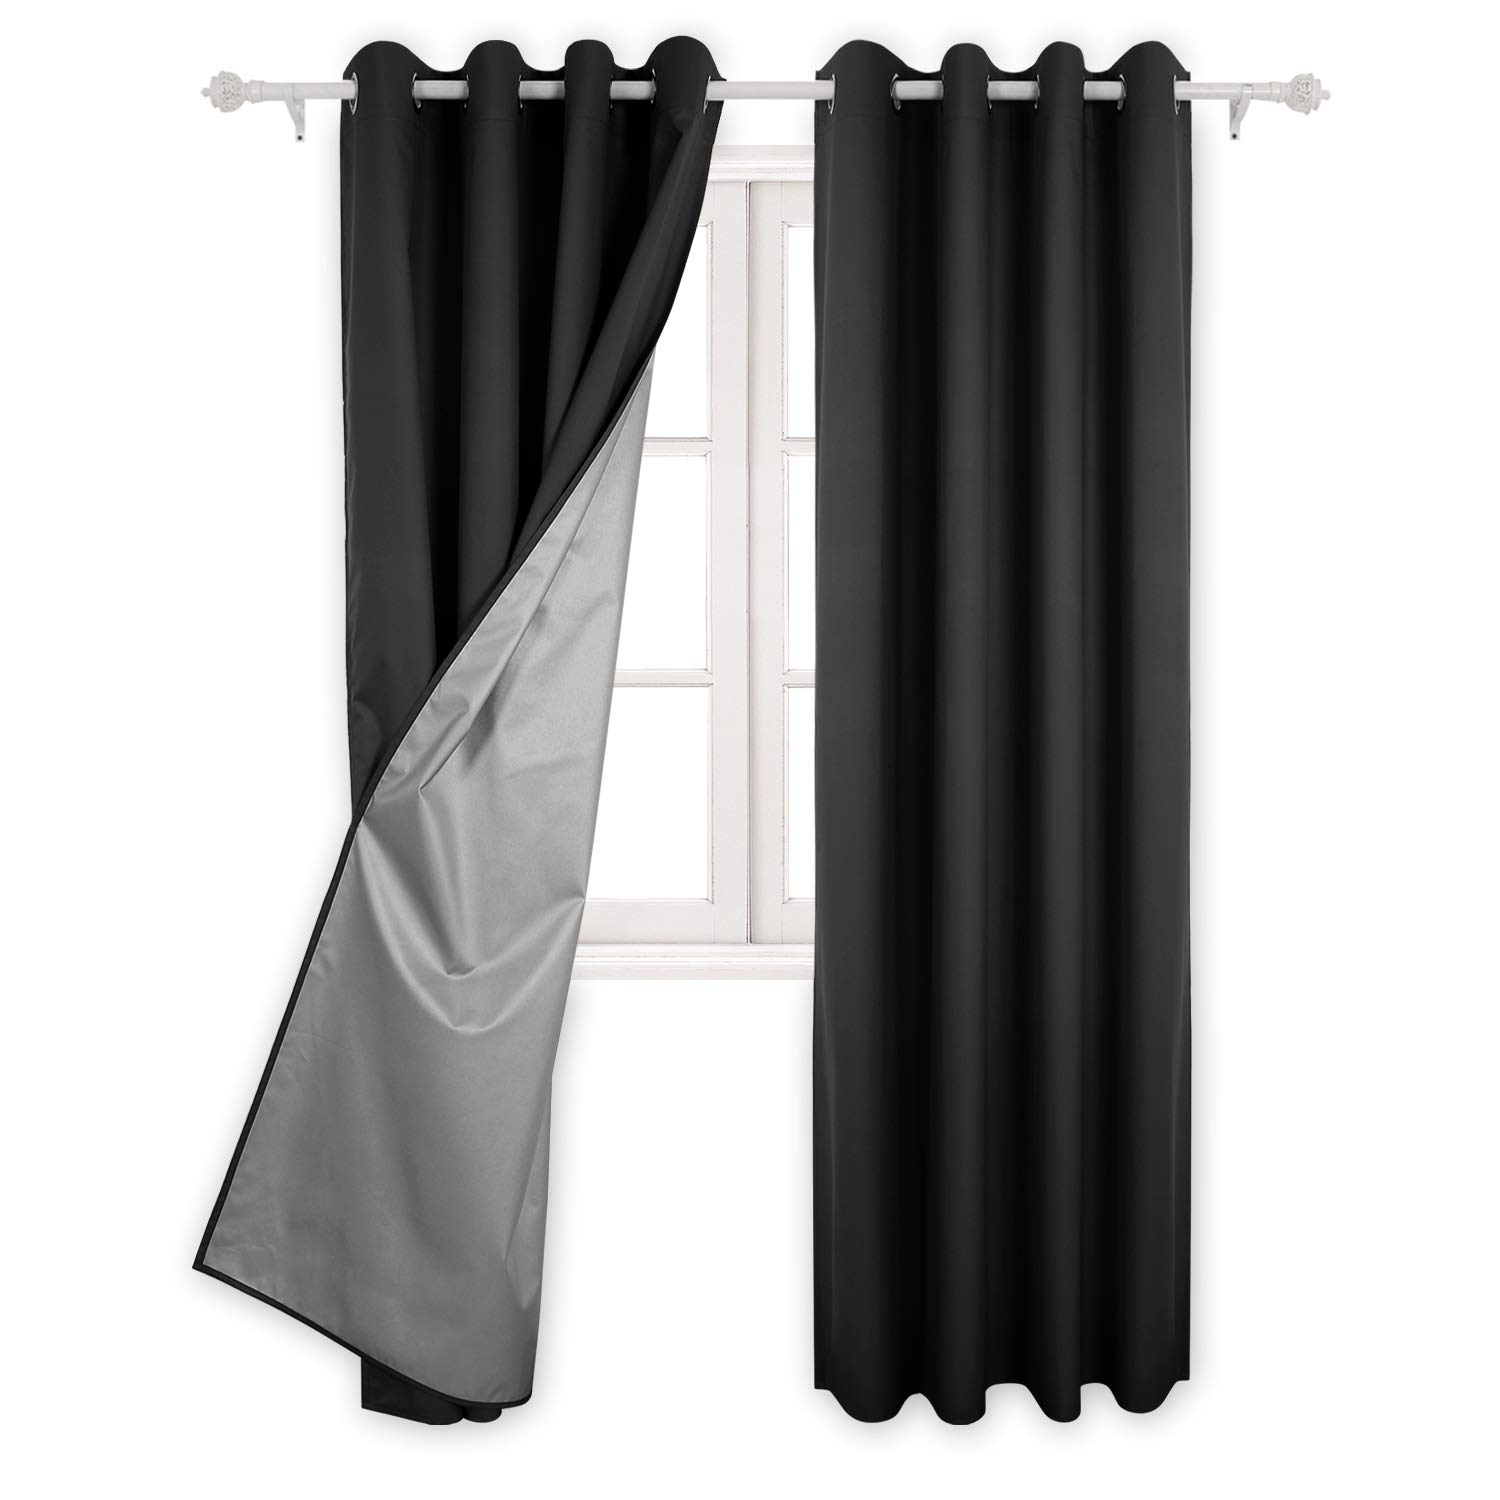 Deconovo Eyelet Curtains Room Darkening Thermal Insulated Ring Top Blackout Curtains for Living Room with Backside Silver Backing to Reflect Sunlights 46 Width x 54 Drop Beige 1 Pair SYNCHKG098078